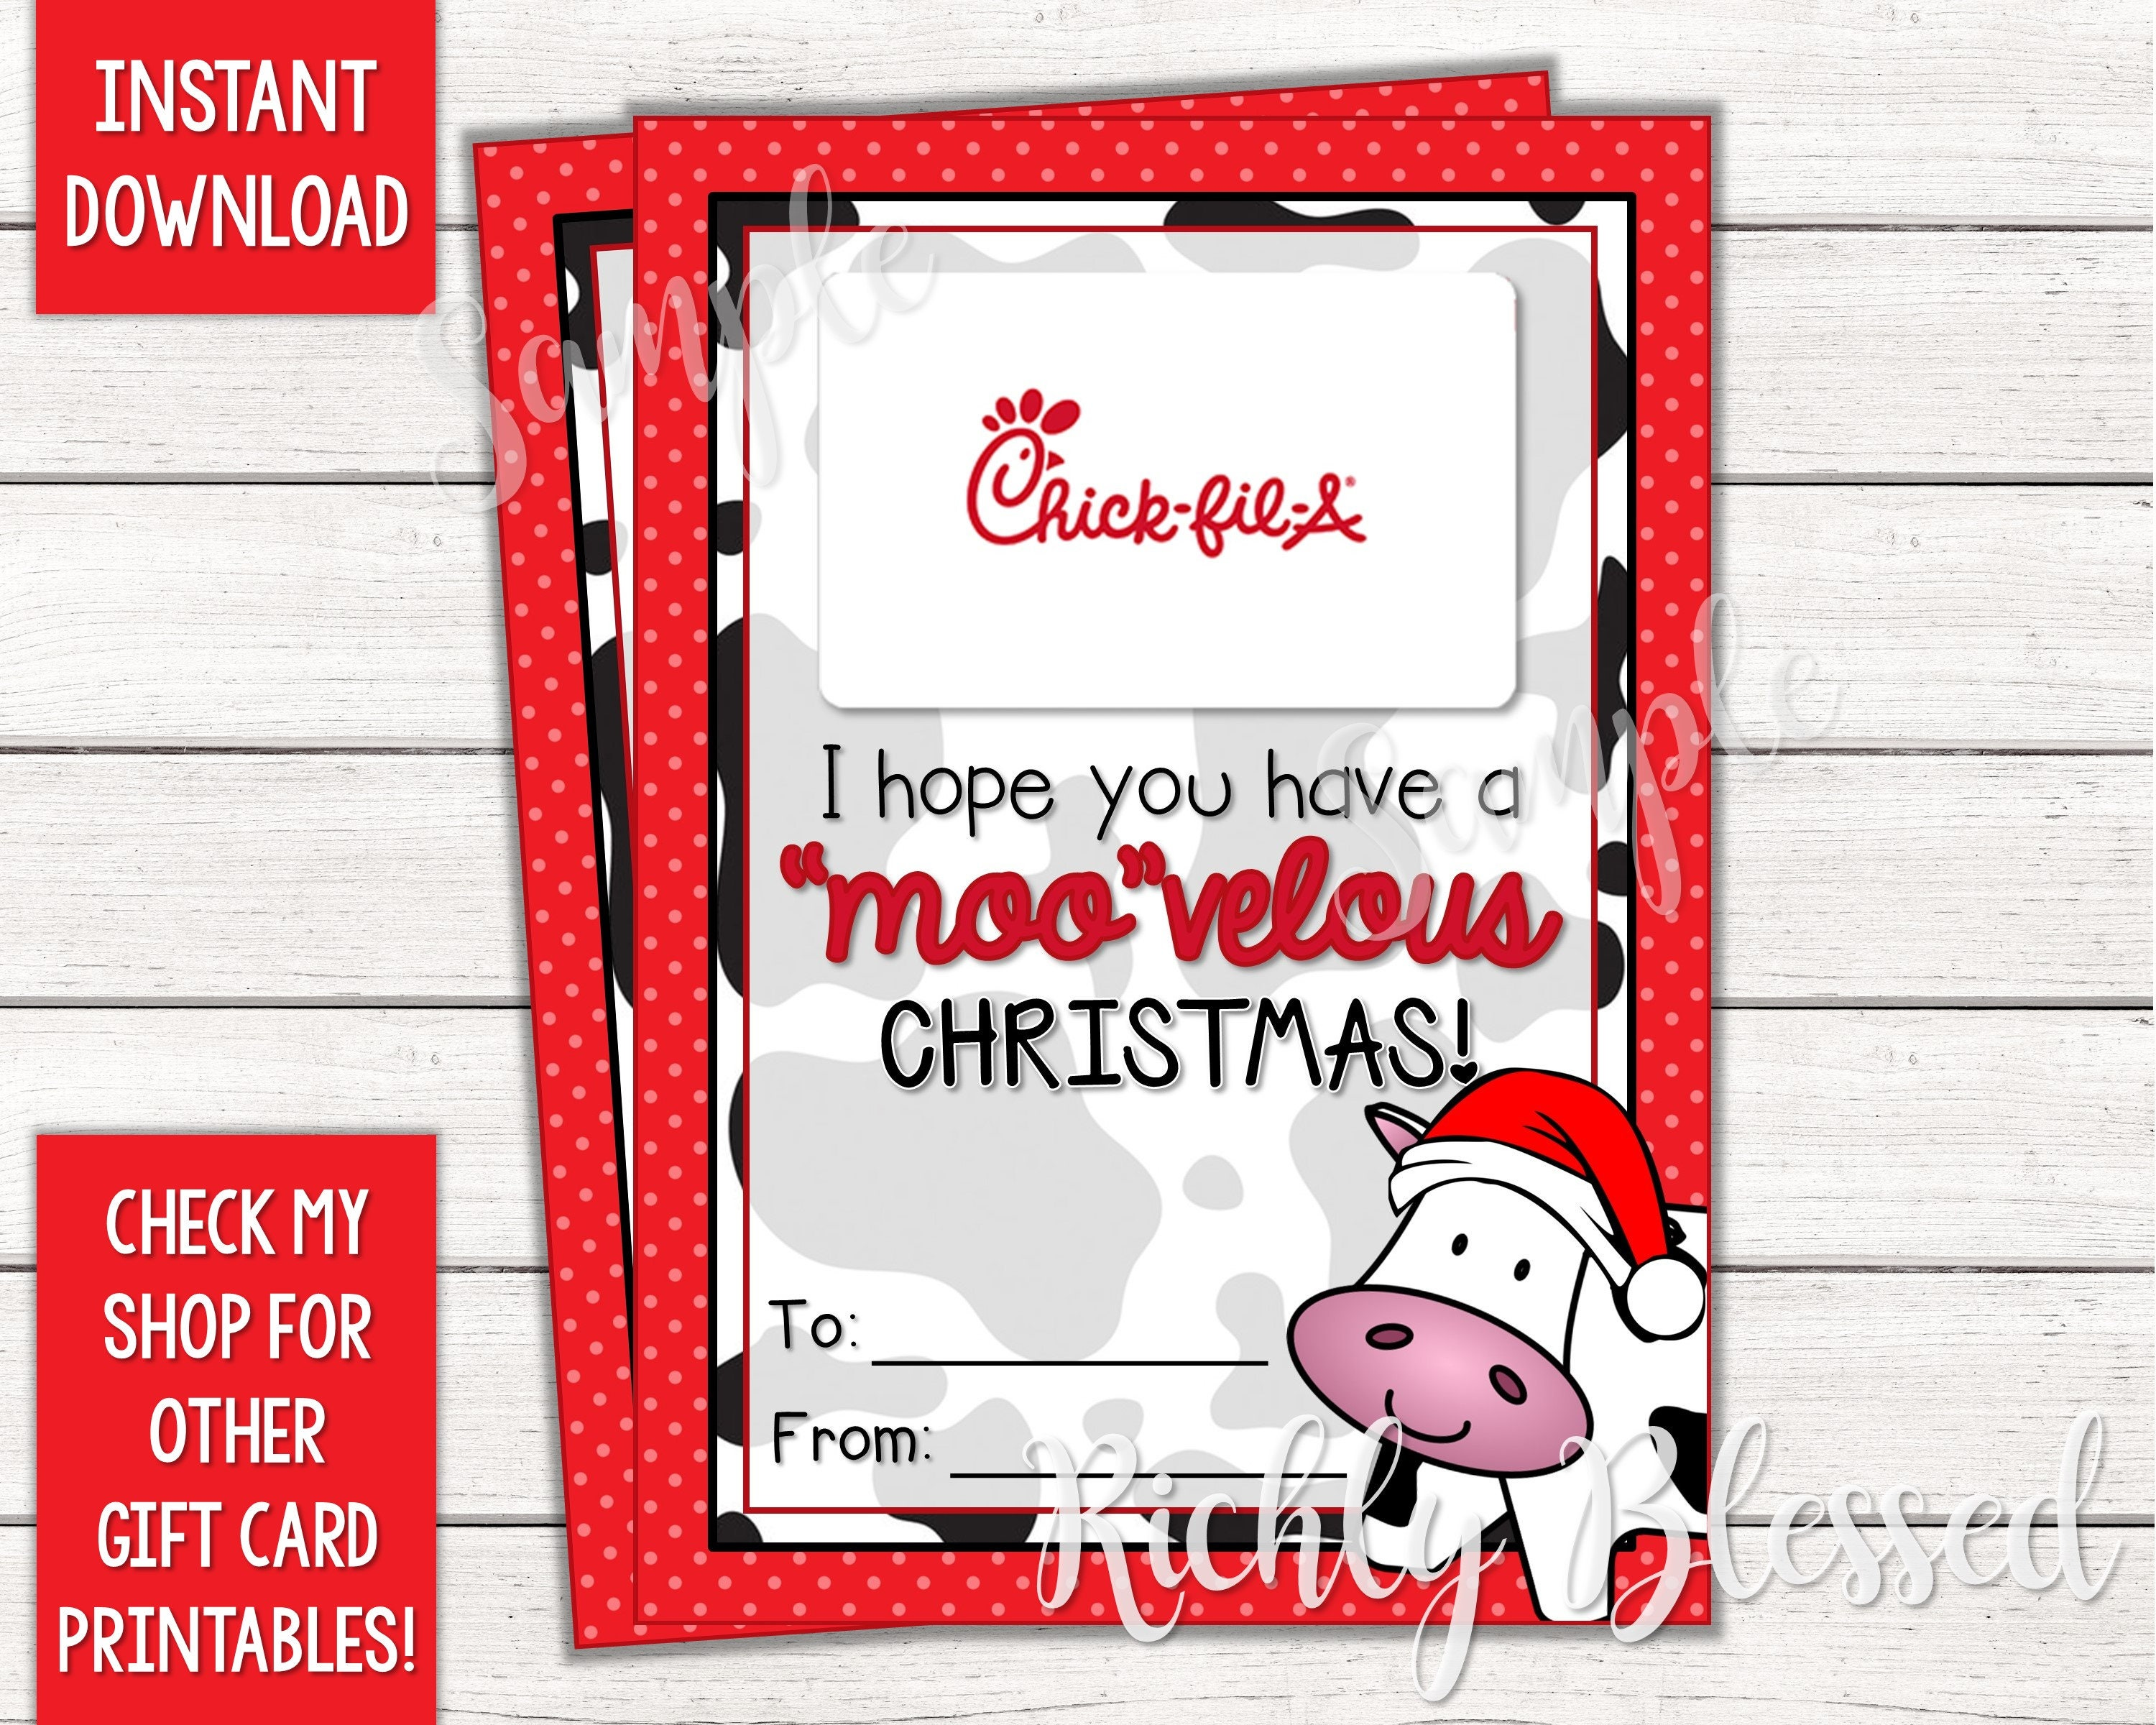 INSTANT DOWNLOAD Chick-fil-A Gift Card Christmas Card Holder | Etsy